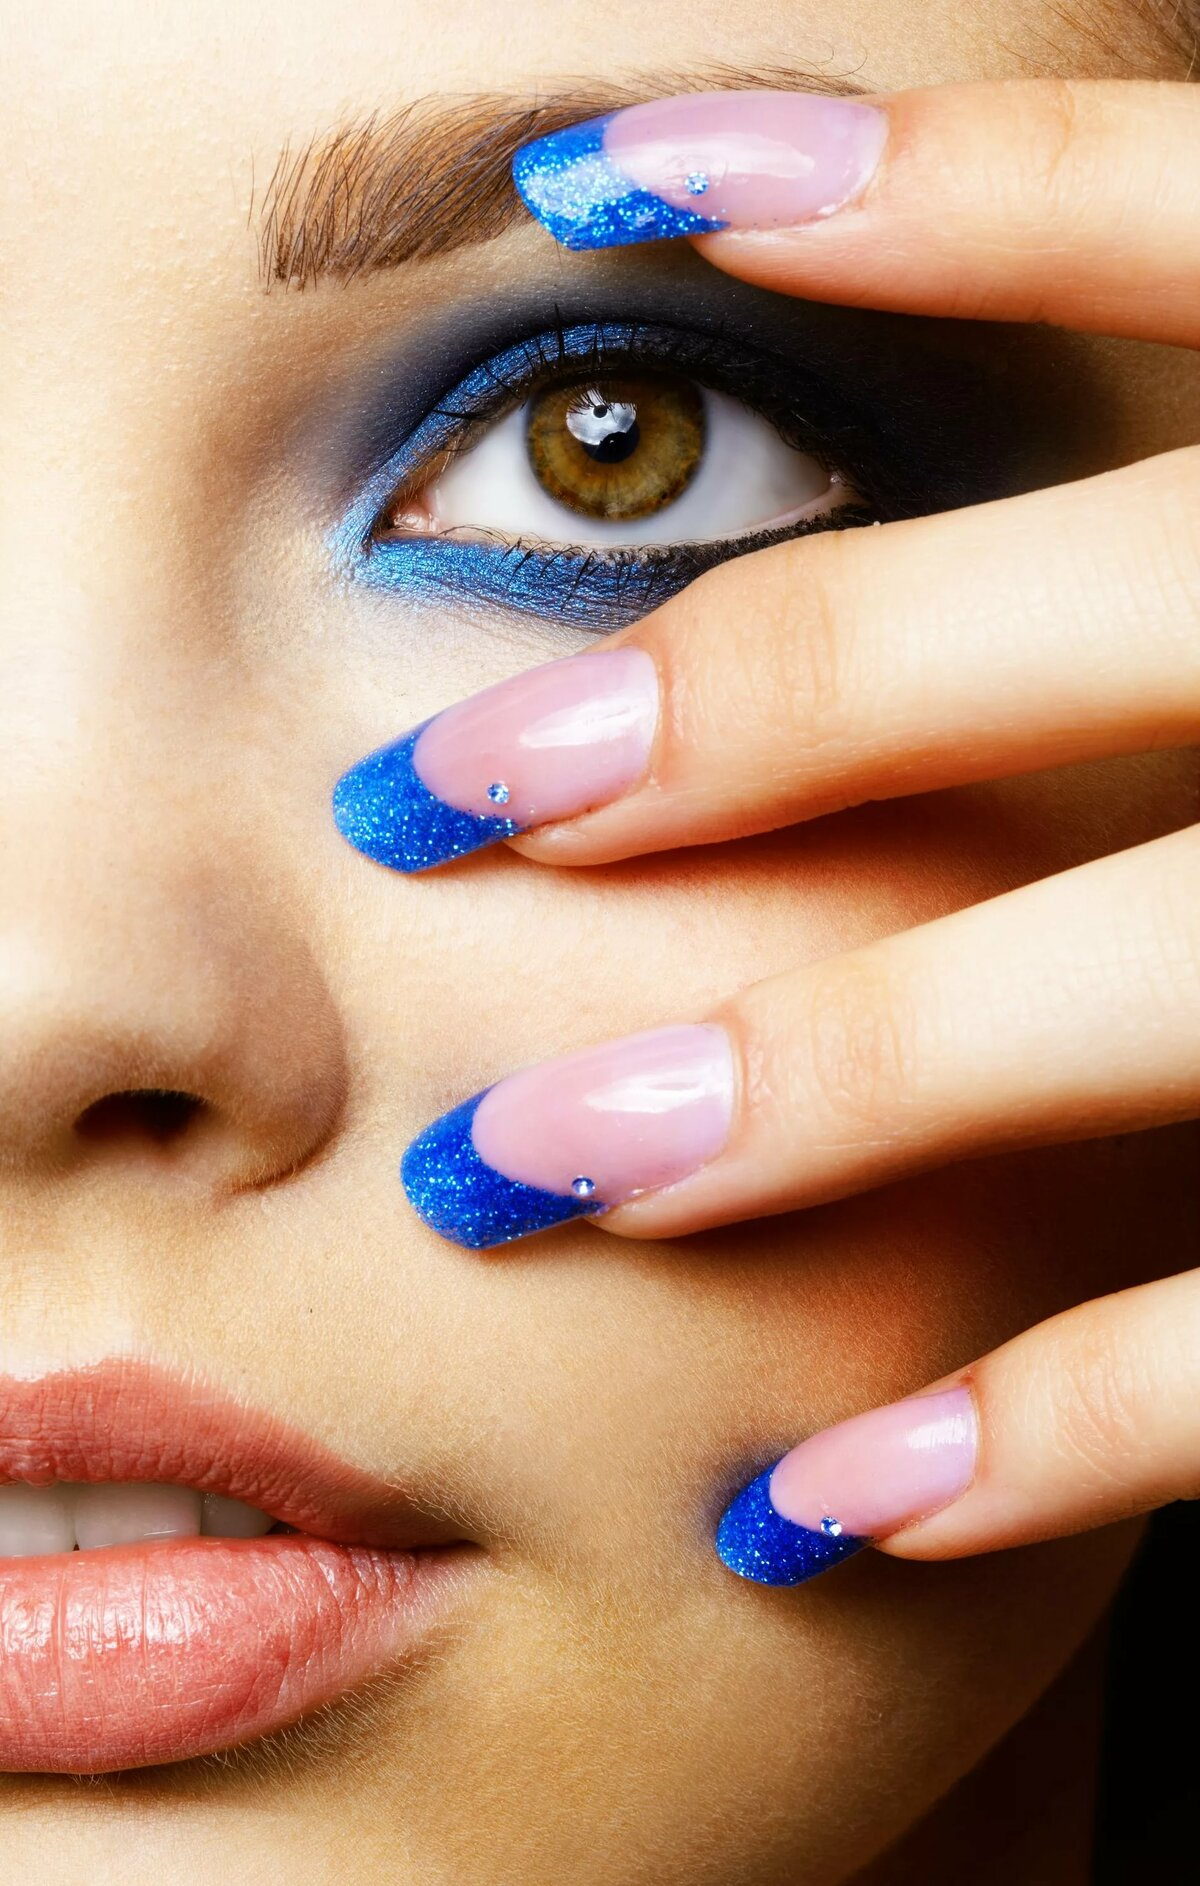 Blue eyes and pretty nails